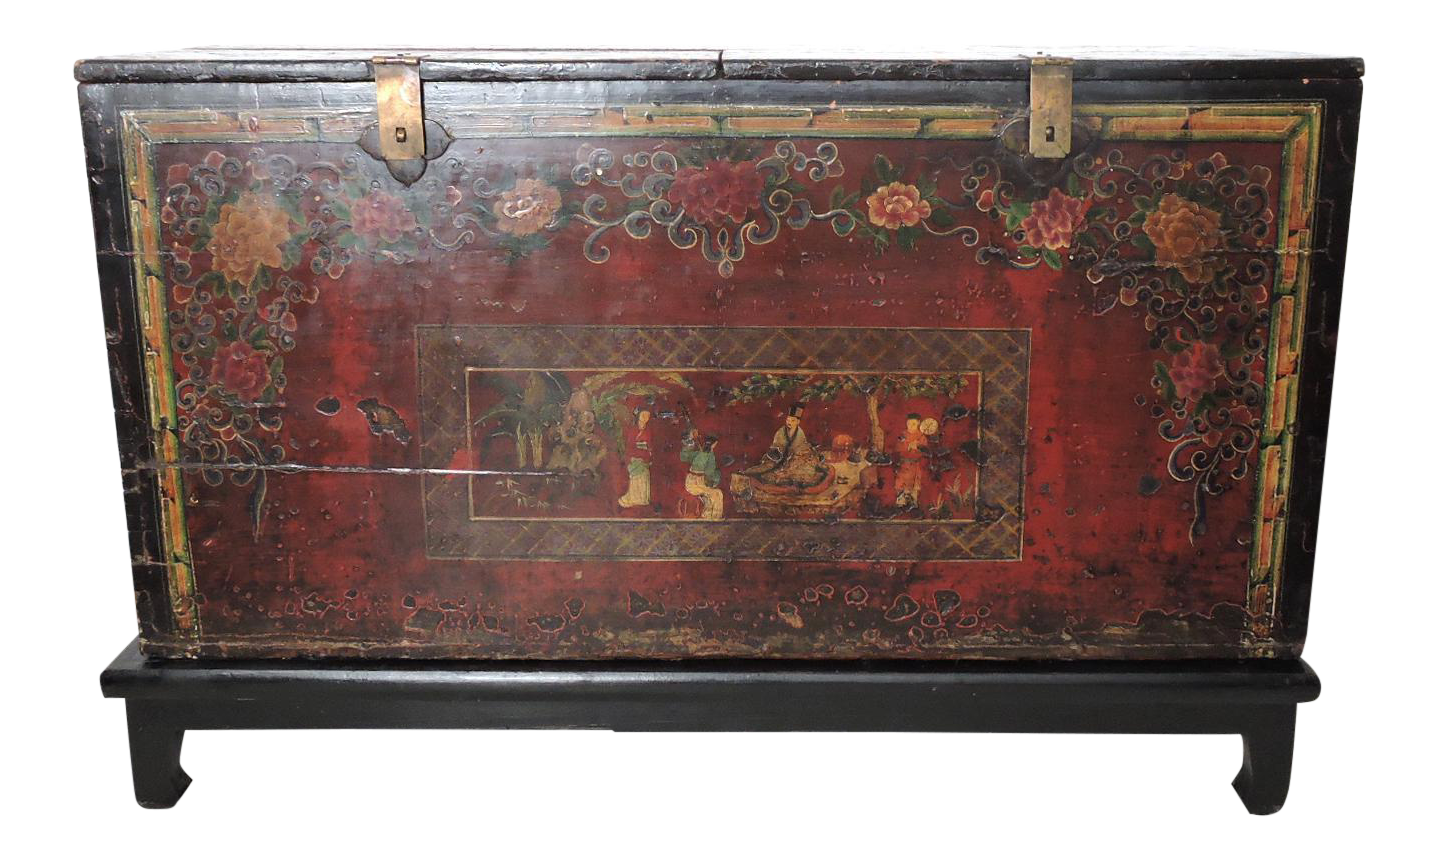 Ordinaire Large Antique And Historical Chinese Storage Trunk/Dowry Chest On  Chairish.com